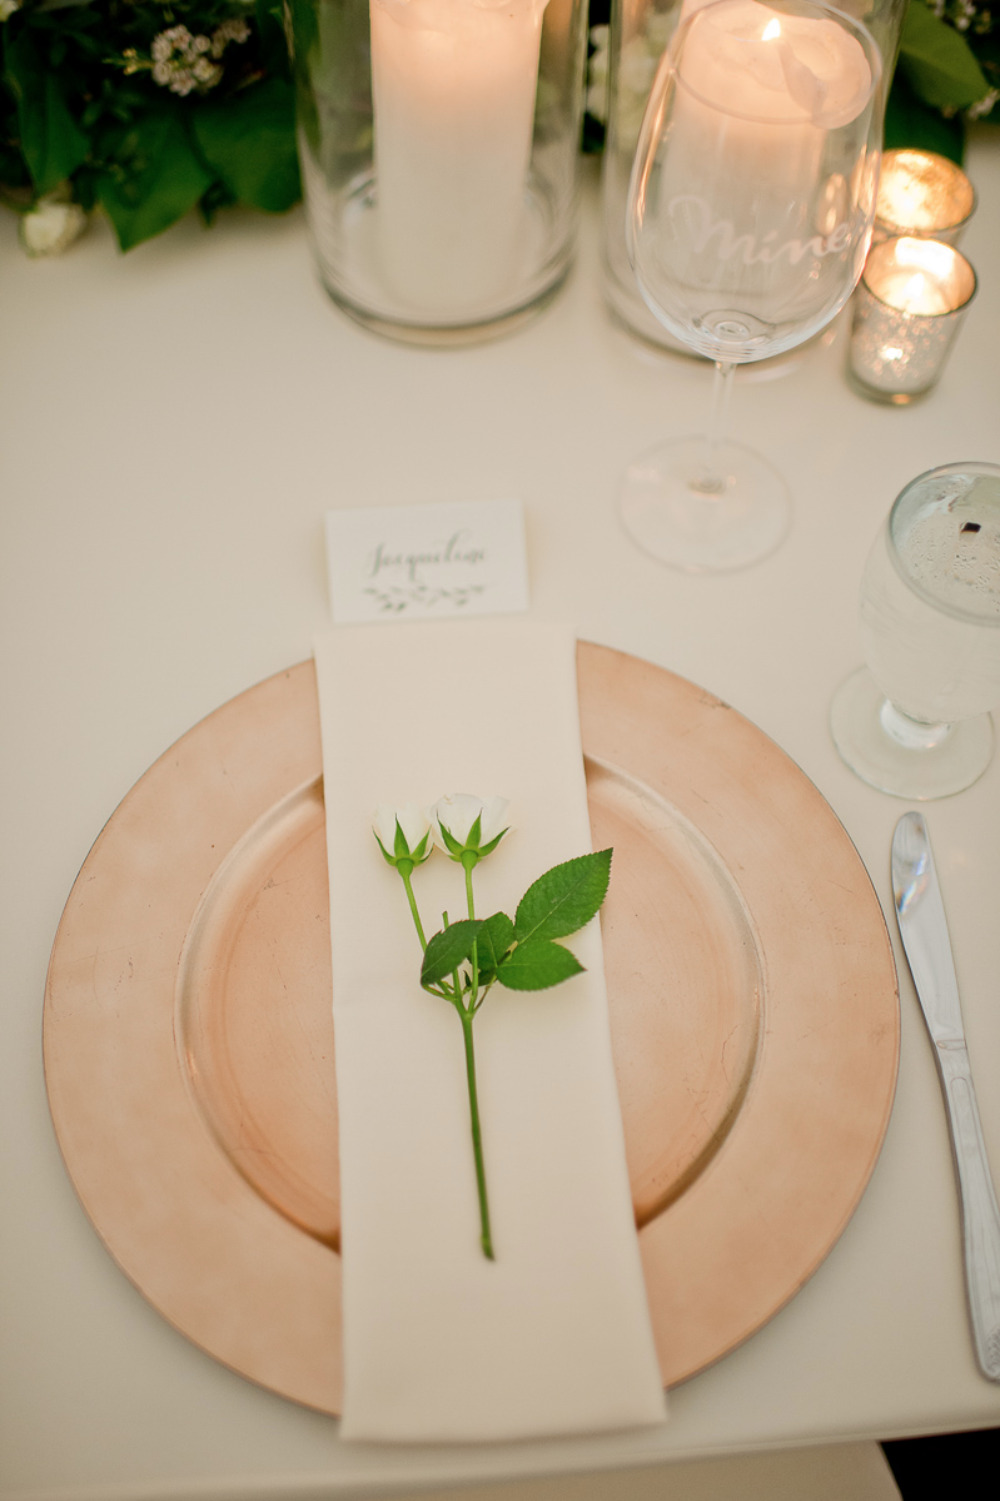 chic simple place setting